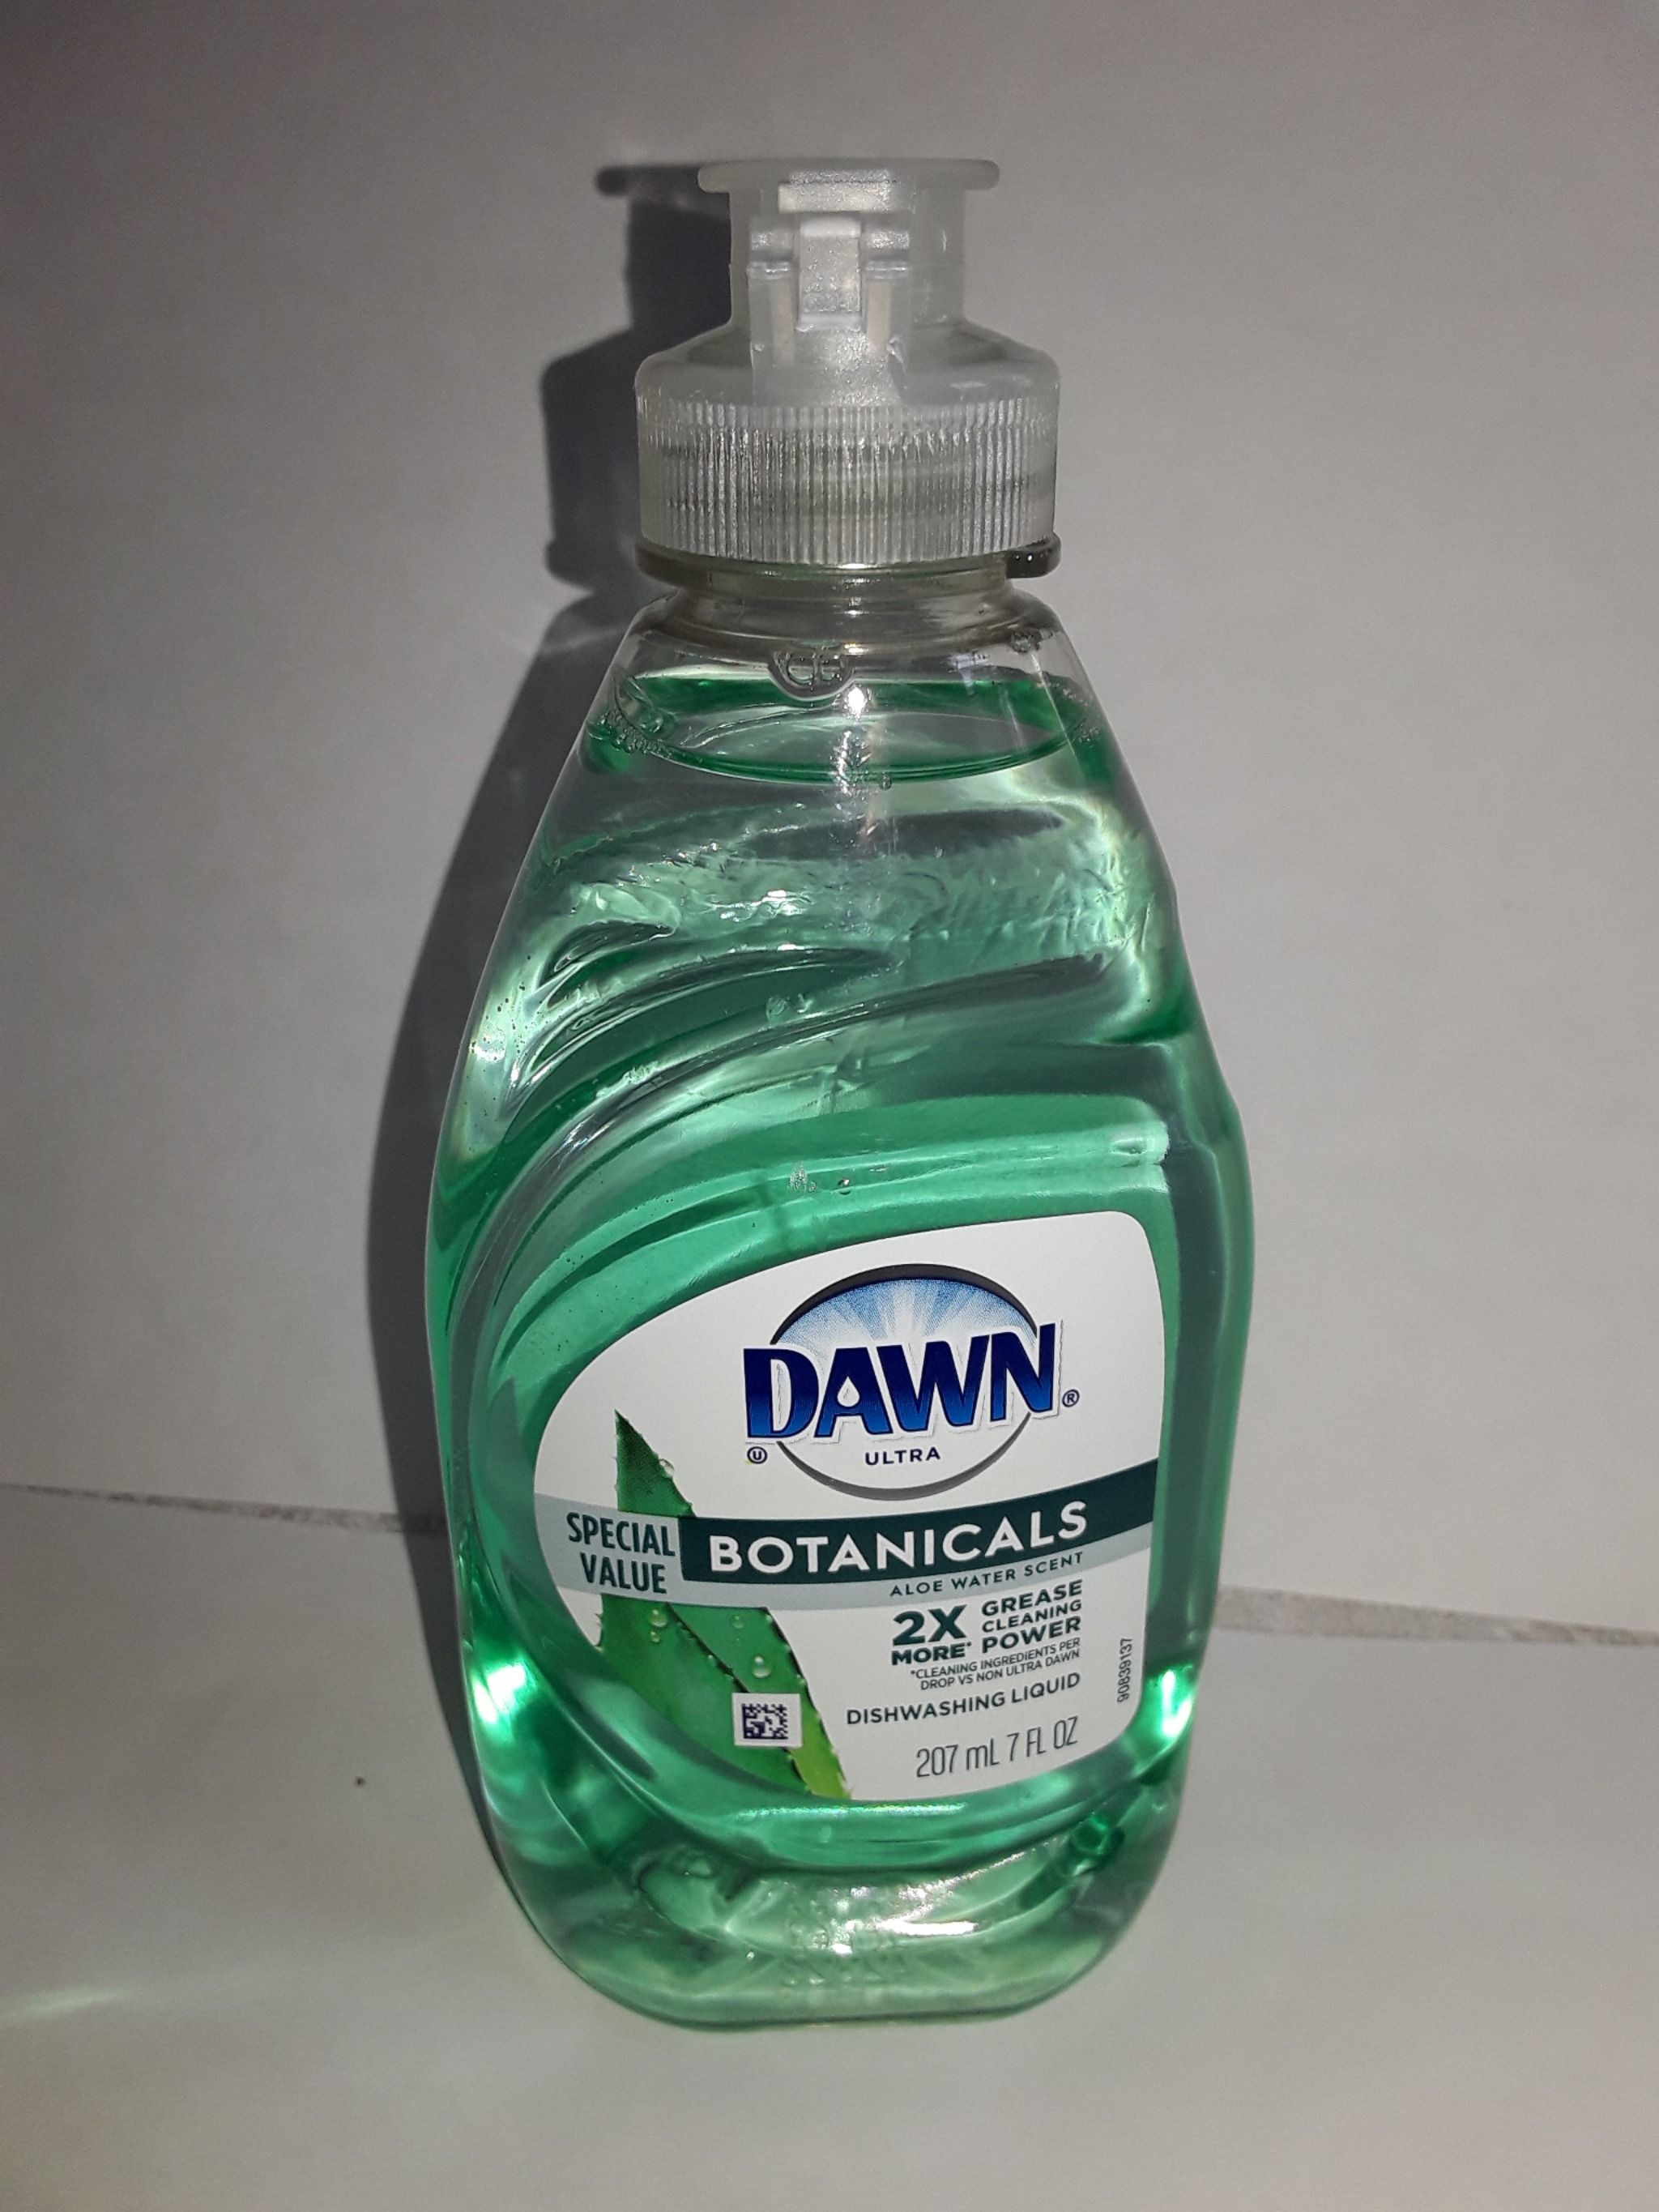 Can You Wash Your Dog With Dawn Dish Detergent Dawn Dish Washing Liquid Many Scents Available Qty 2 Bottle Pack 8oz Clean Cleaning Detergent Soap Oil Spill Clean Up